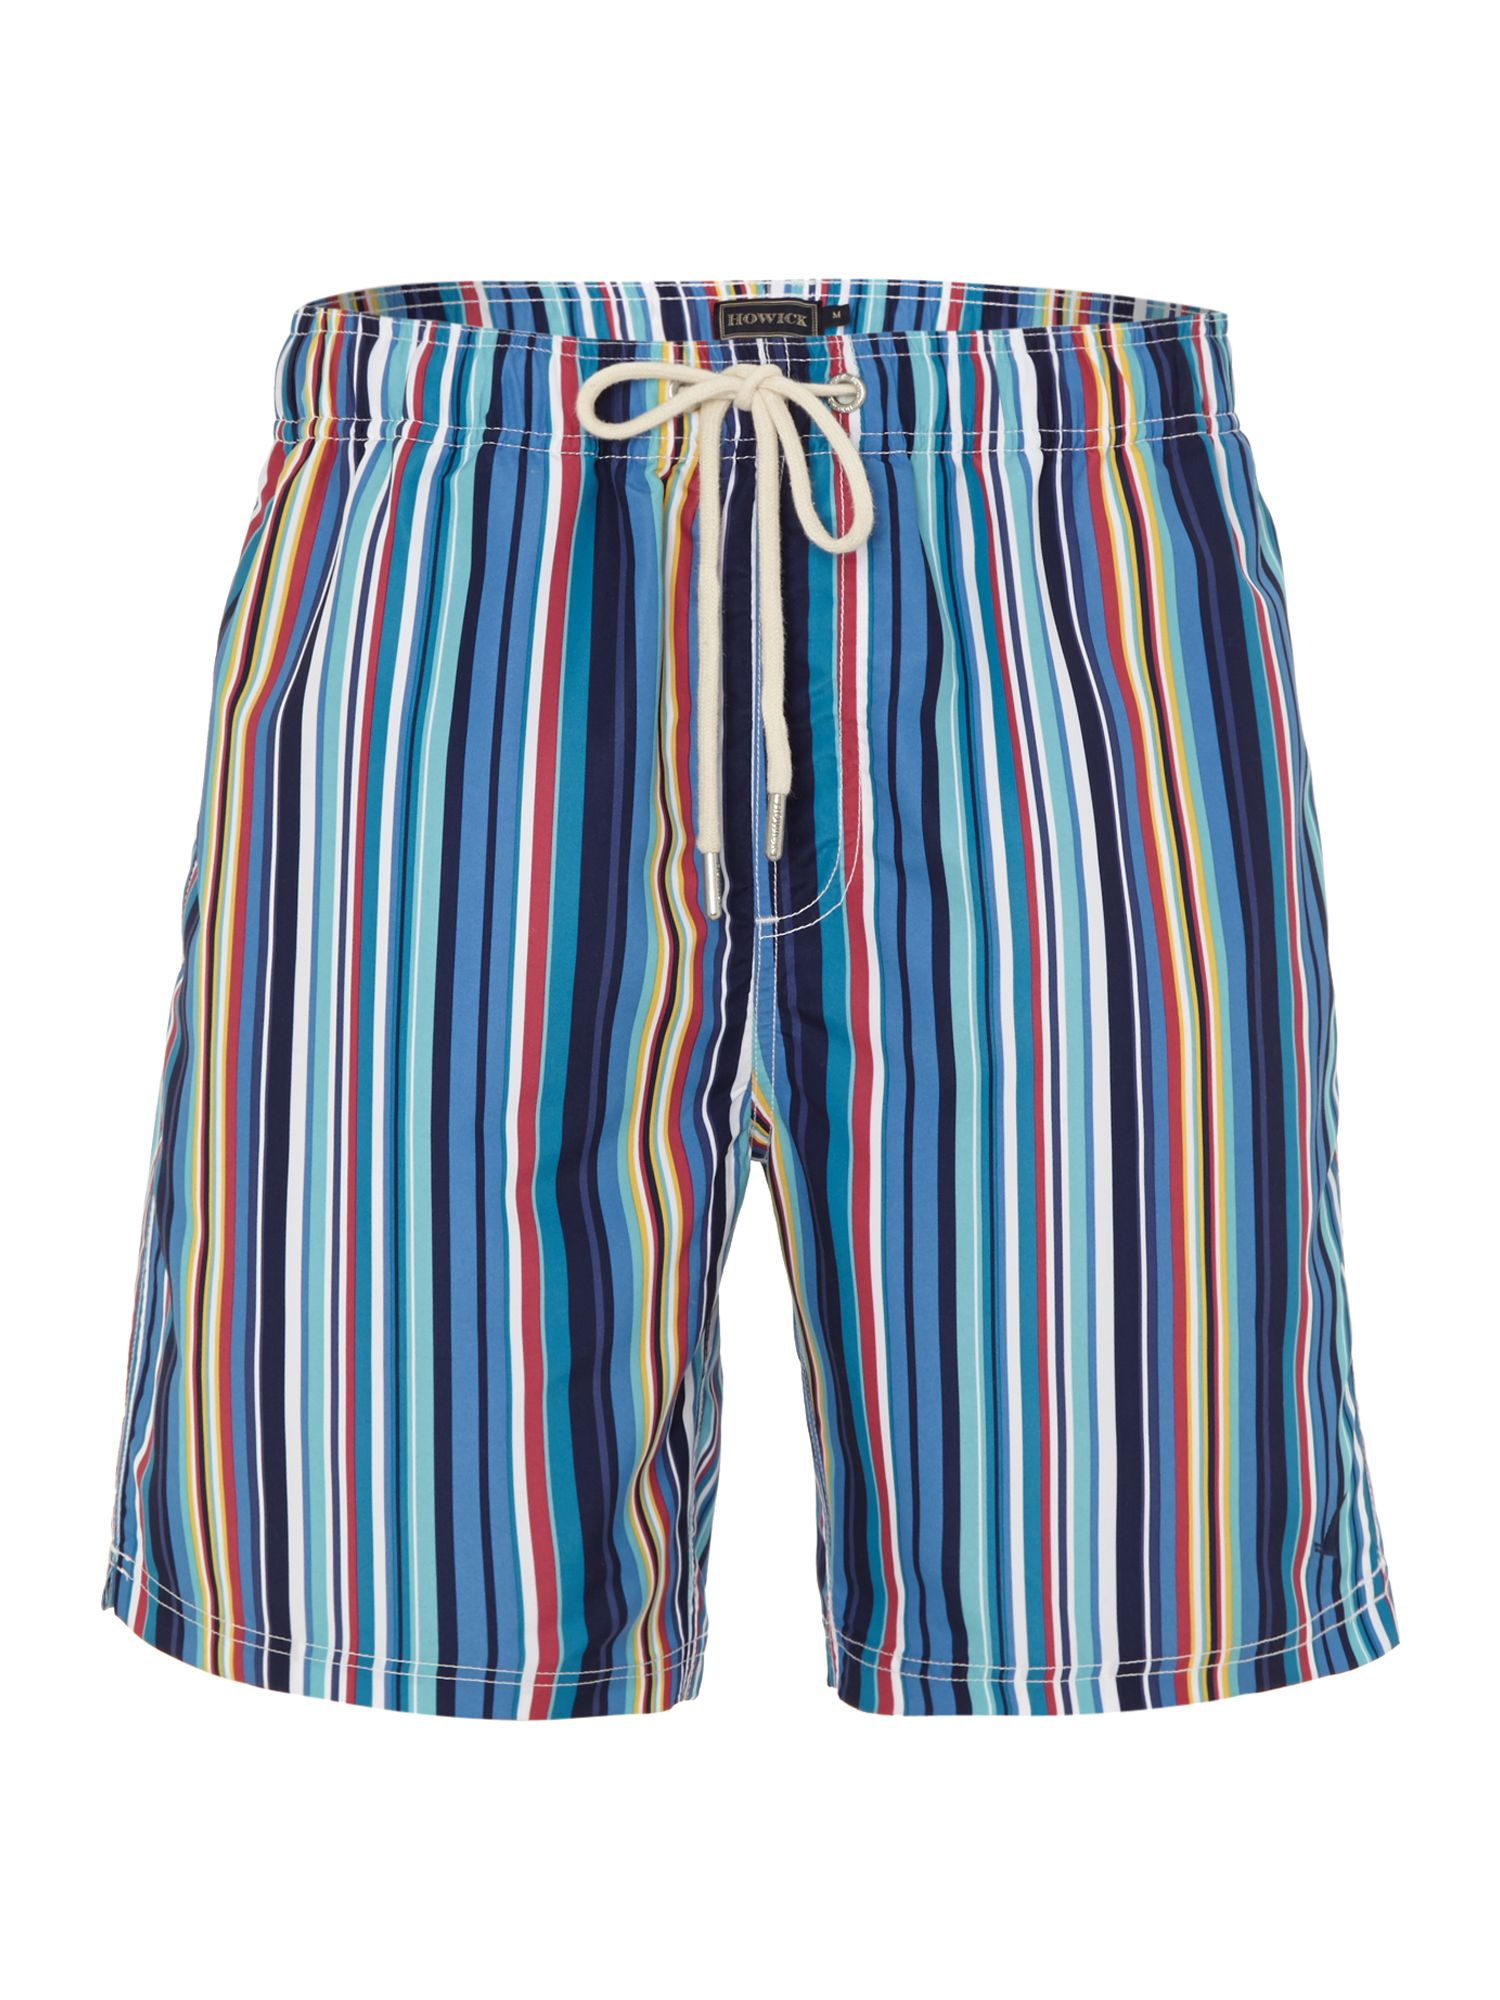 Multi stripe swim shorts